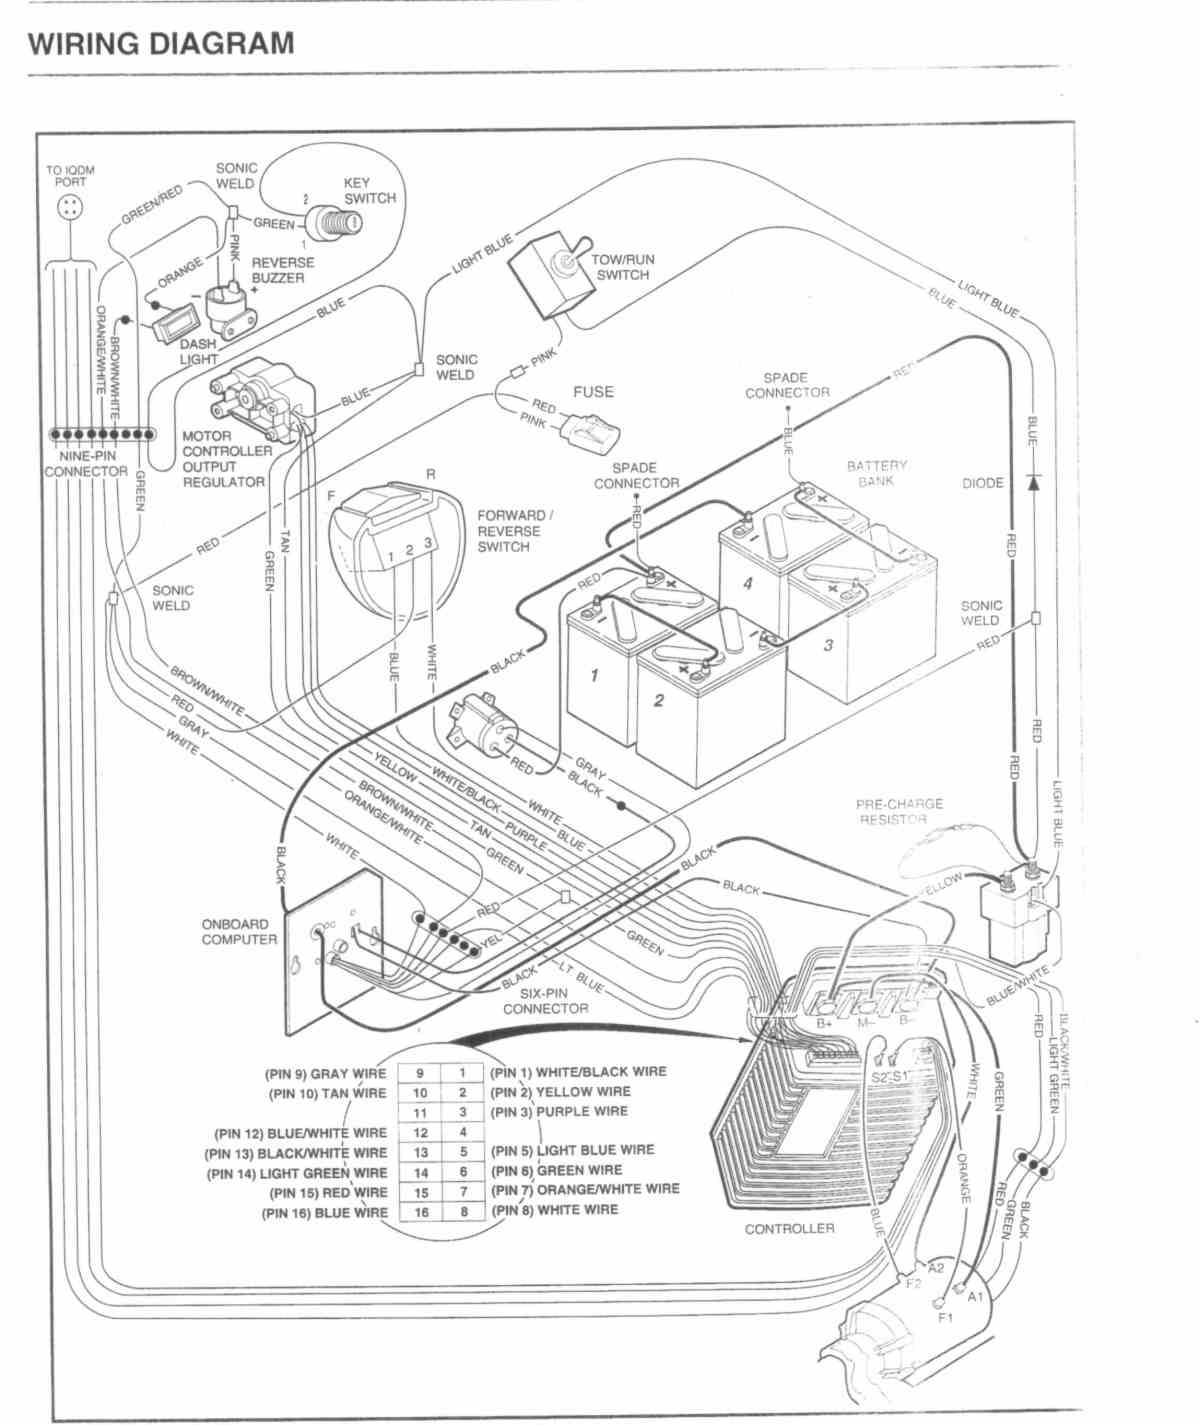 https://carpny.org/wp-content/uploads/2017/09/club... Ezgo Golf Cart Wiring Diagram Gas Engine on ez go gas engine diagram, ezgo golf cart drive clutch diagram, ezgo gas workhorse wiring-diagram, ezgo golf cart ignition diagram, ezgo differential diagram, ezgo golf cart brake diagram, ezgo carburetor diagram, ezgo pds wiring-diagram, ez go golf cart diagram, ezgo gas electrical diagrams, 1994 ezgo gas wiring diagram, ez go txt battery diagram, yamaha golf cart parts diagram, ezgo motor diagram, ezgo gas golf cart specifications, ez go electrical diagram, ezgo txt wiring-diagram, 1979 ezgo golf cart wiring diagram, 1998 ezgo gas wiring diagram, ezgo golf cart light wiring diagram,